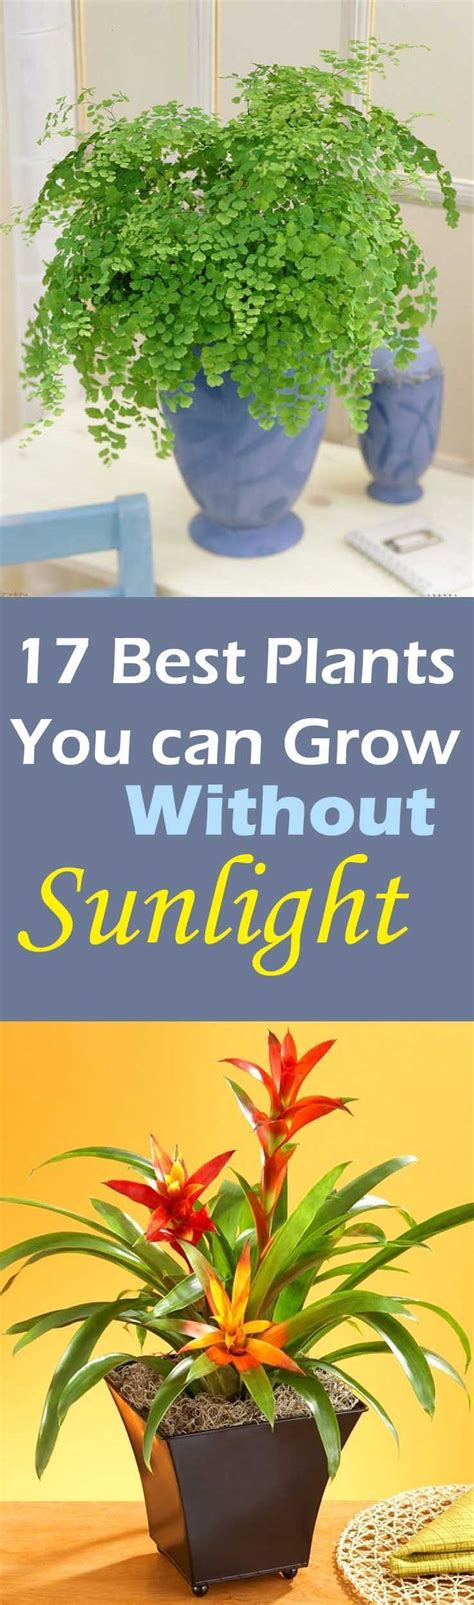 best light for growing plants indoors 25 best ideas about low light plants on pinterest low